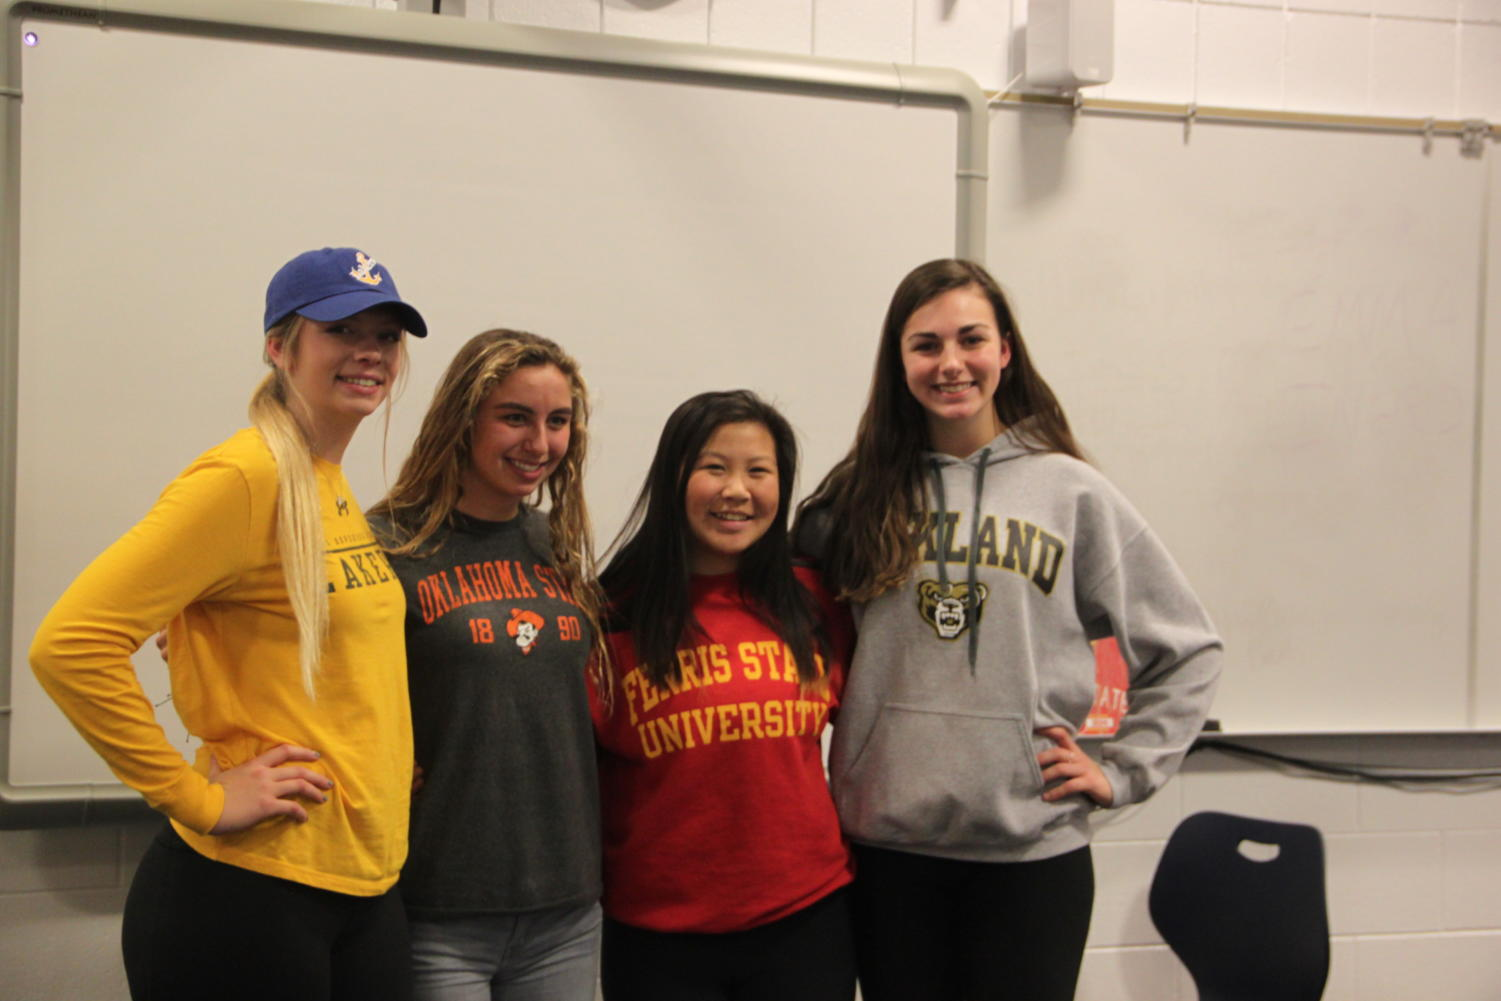 The four athletes pose together. From left to right: Avery Strohmeyer (Lake Superior State), Gabby Hentemann (Oklahoma State University), Baby Hang (Ferris State University), Avolyn Lepo (Oakland University).